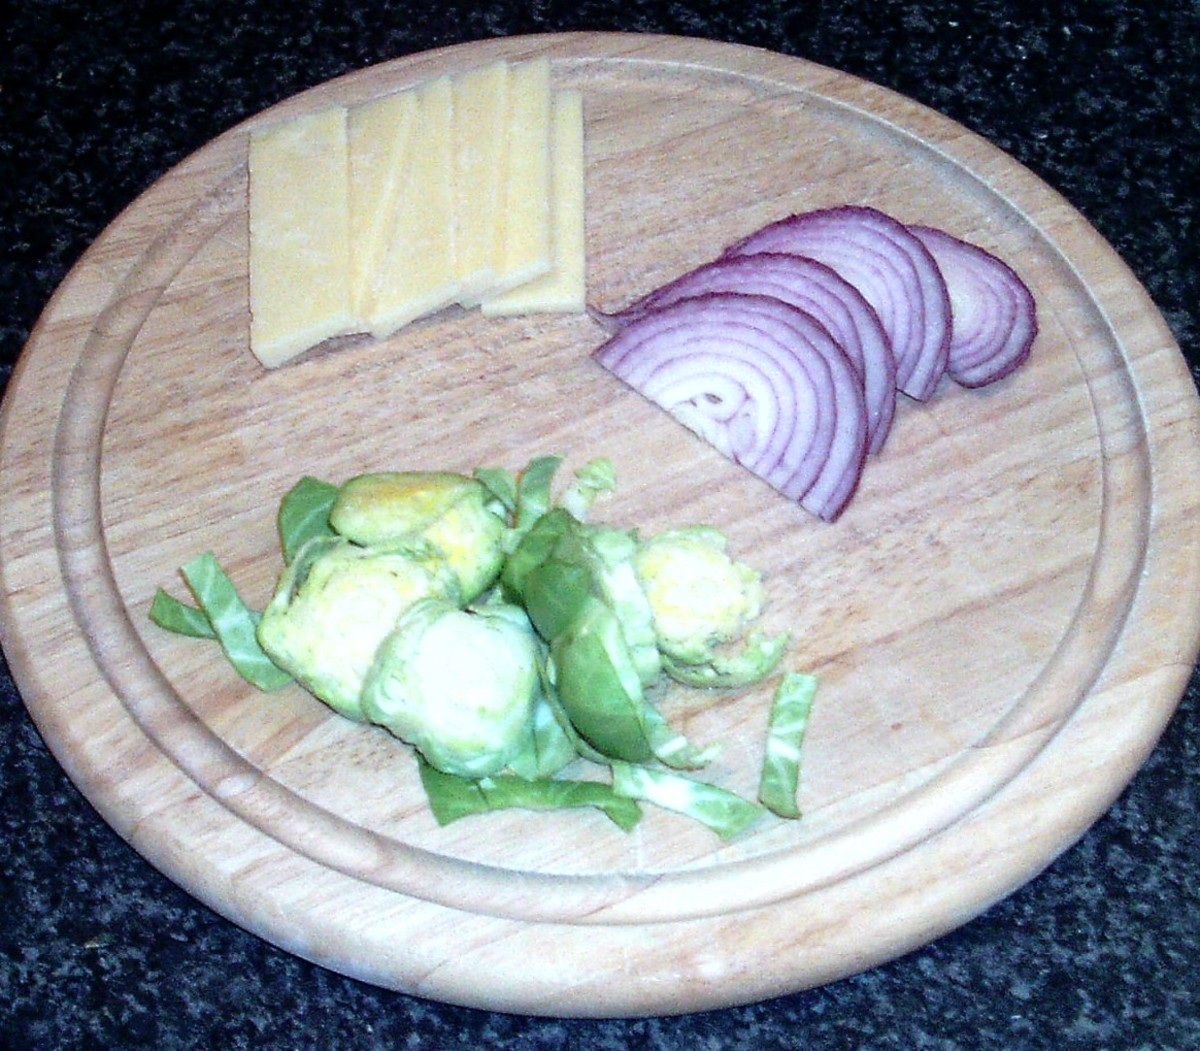 Sliced sprouts, cheese and onion